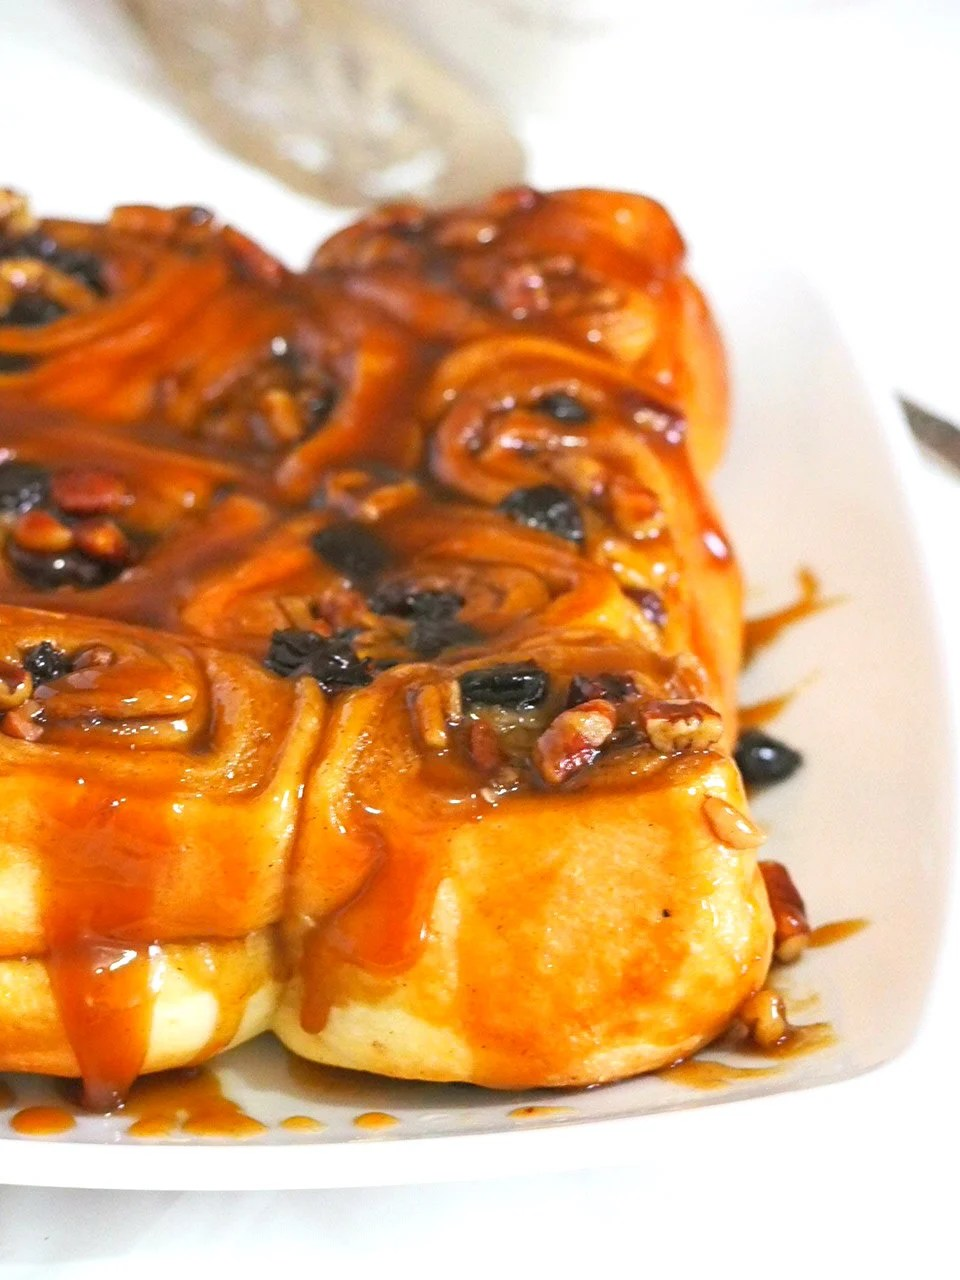 These sticky buns are loaded with pecan nuts and raisins, and covered in a sweet and sticky brown sugar topping. These are the ultimate cinnamon rolls using brioche dough that is packed with  flavorful cinnamon sugar filling.